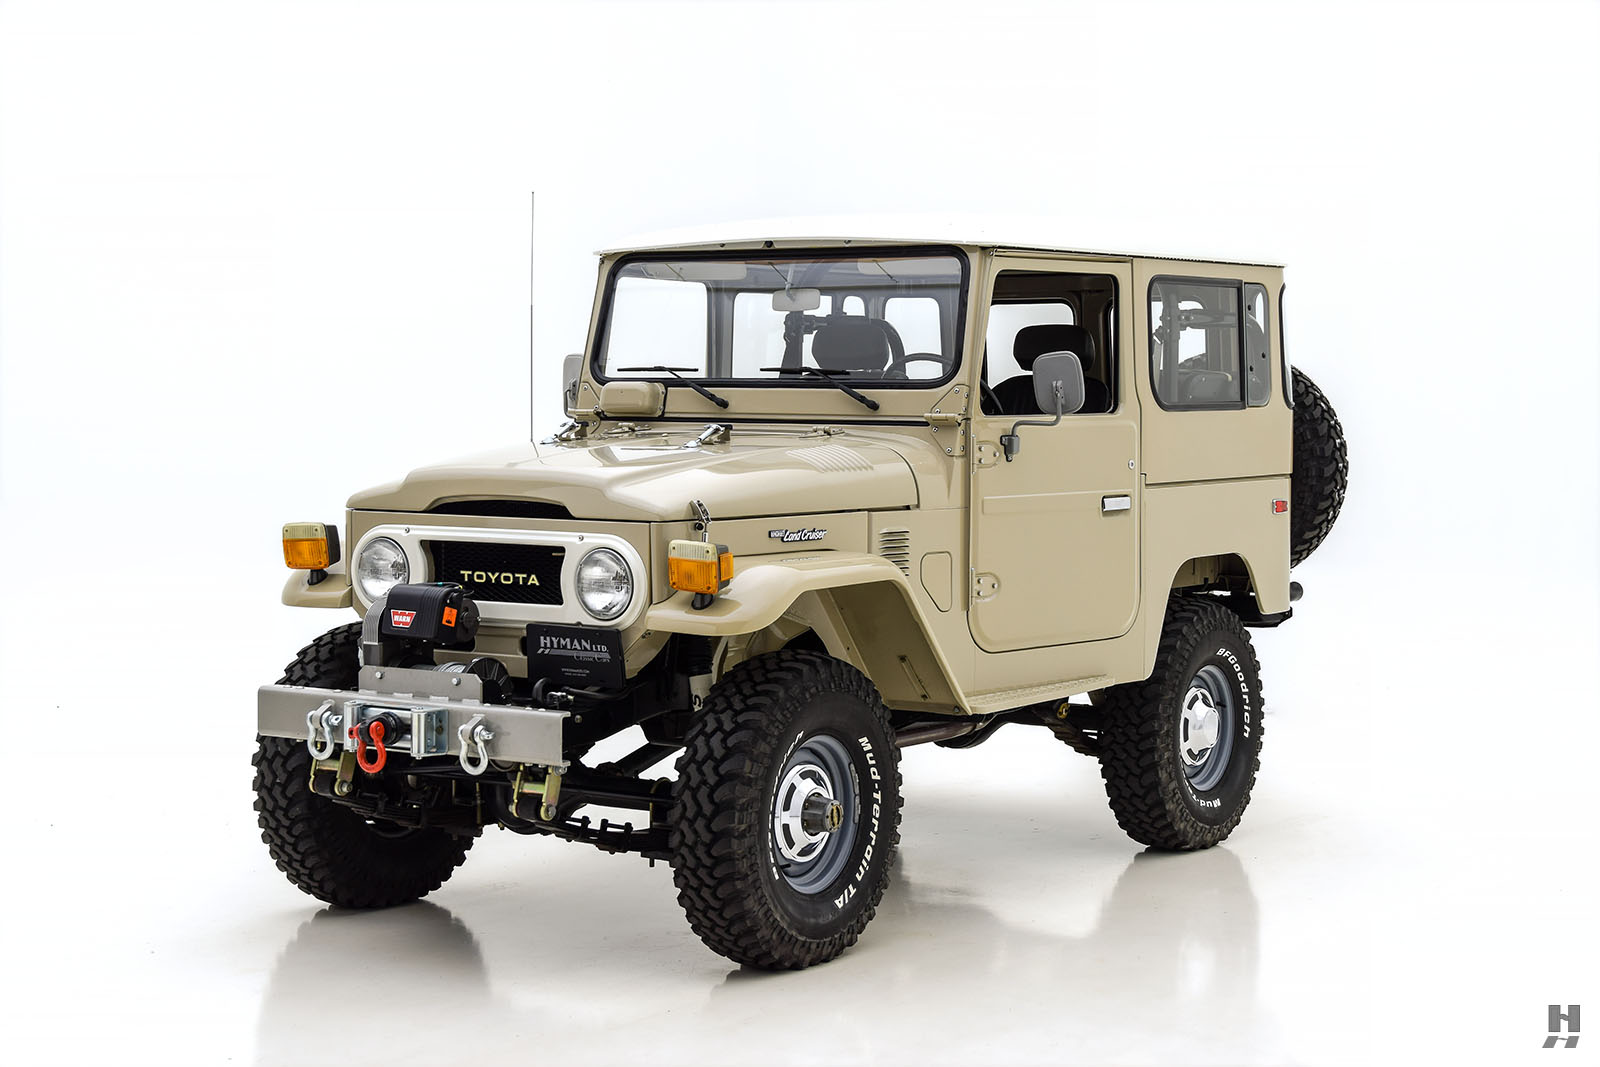 1978 toyota fj40 land cruiser for sale buy classic cars hyman ltd. Black Bedroom Furniture Sets. Home Design Ideas